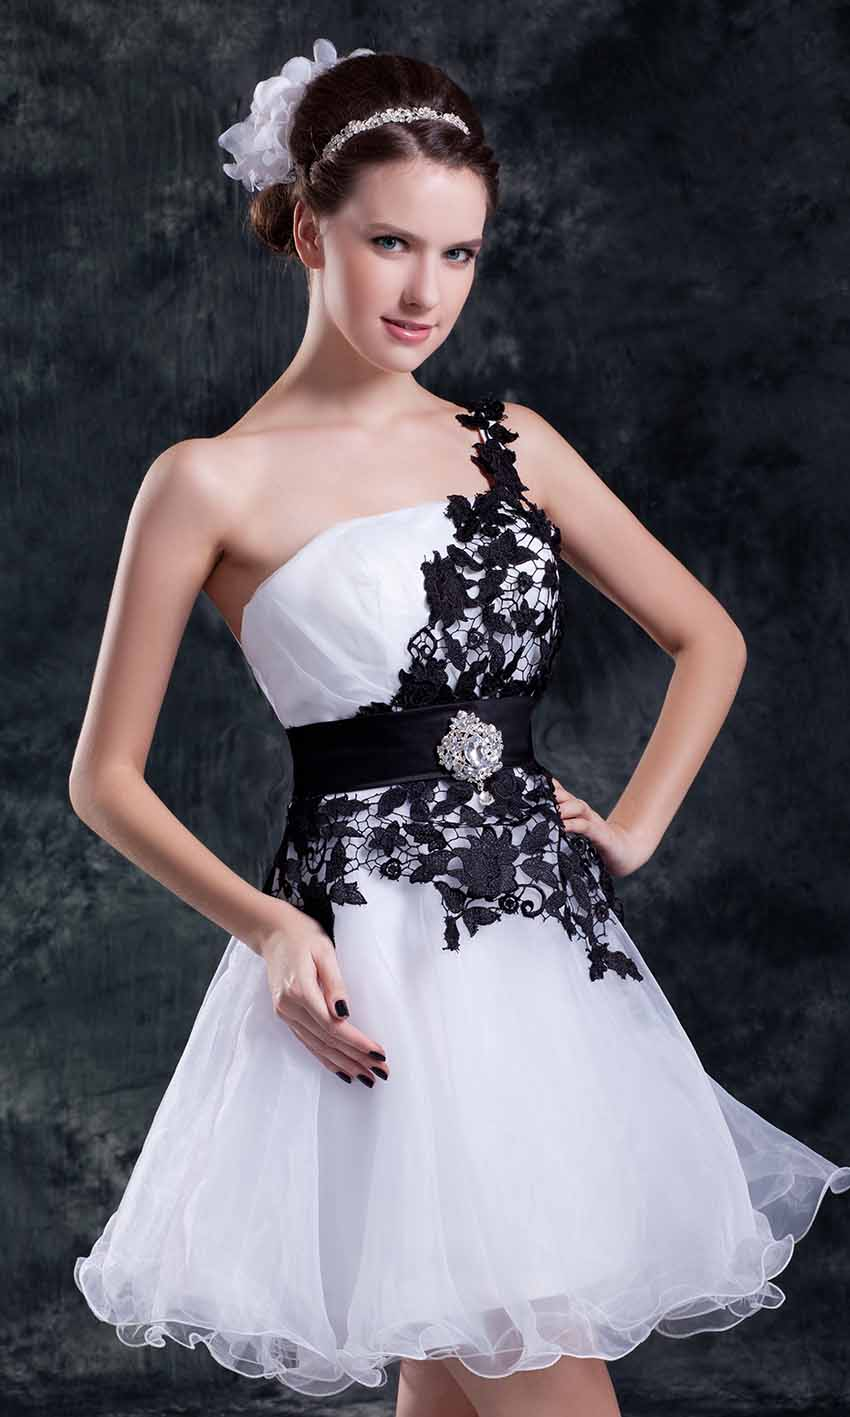 72196d265801 Black and White Short Tulle Princess Graduation Dress KSP375 [KSP375] -  £94.00 : Cheap Prom Dresses Uk, ...